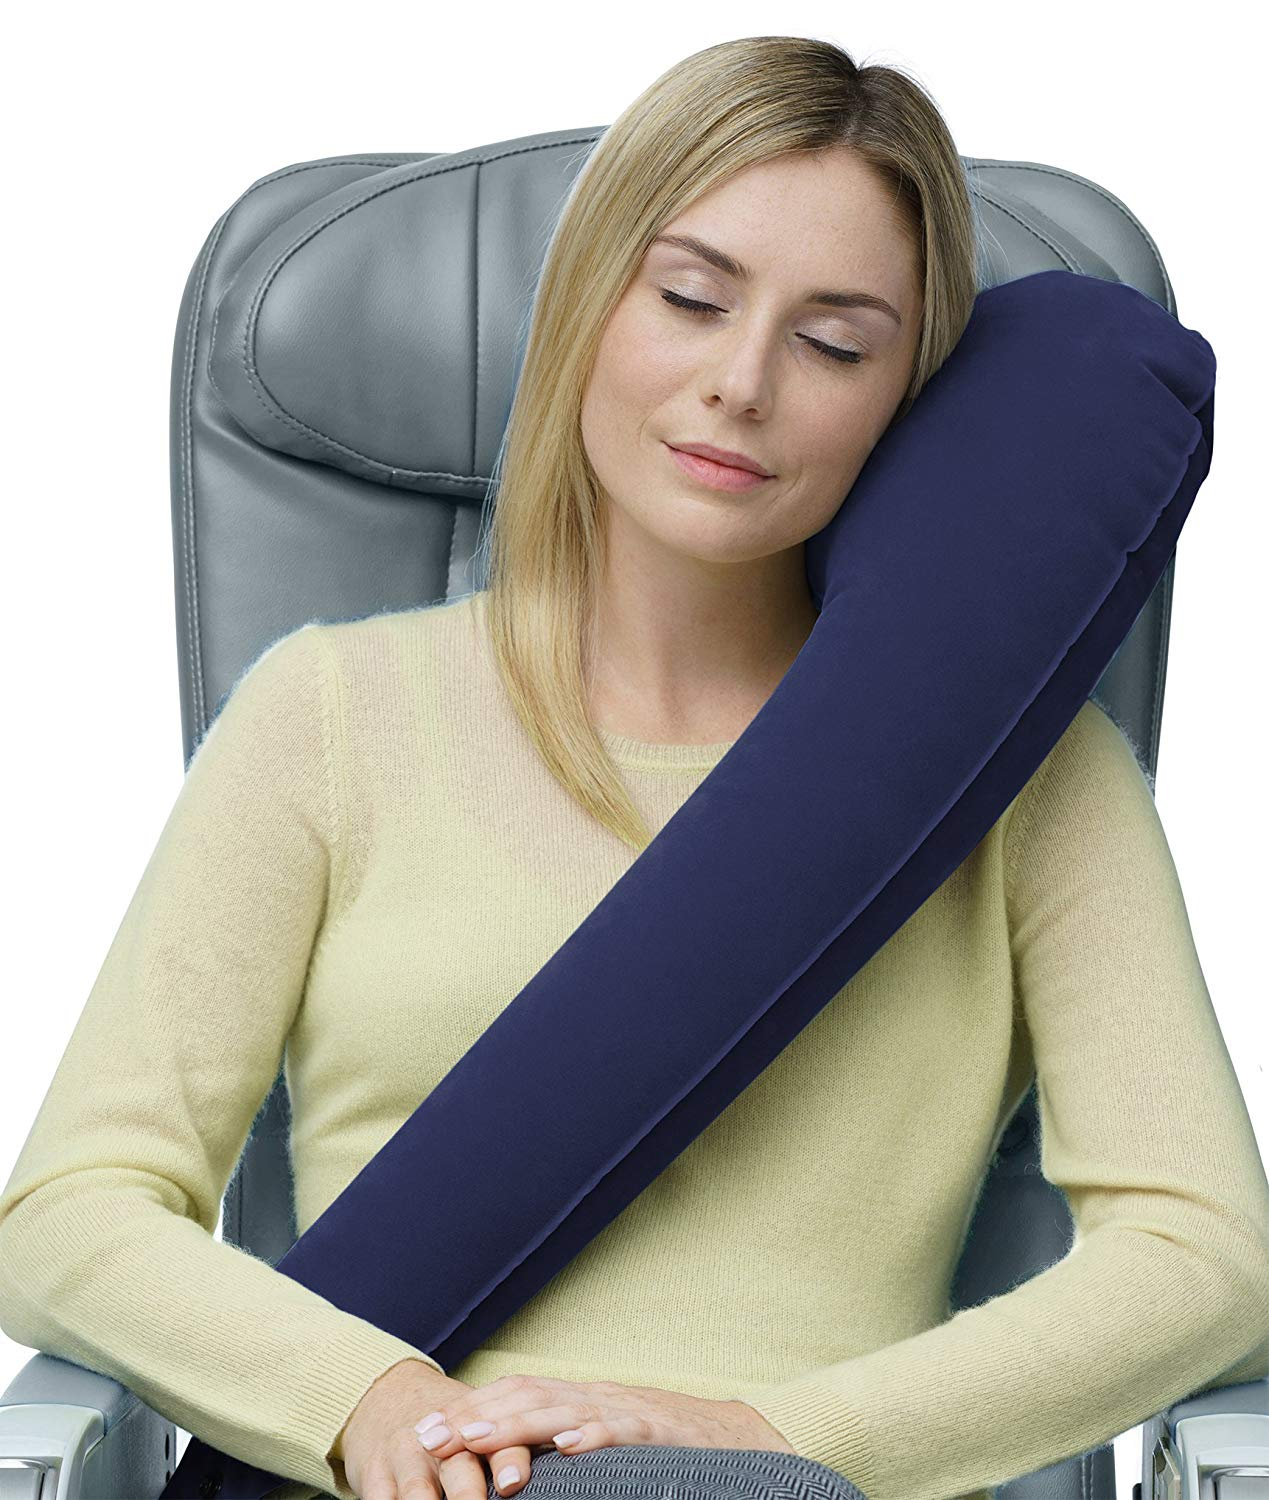 Ultimate® Travel Pillow